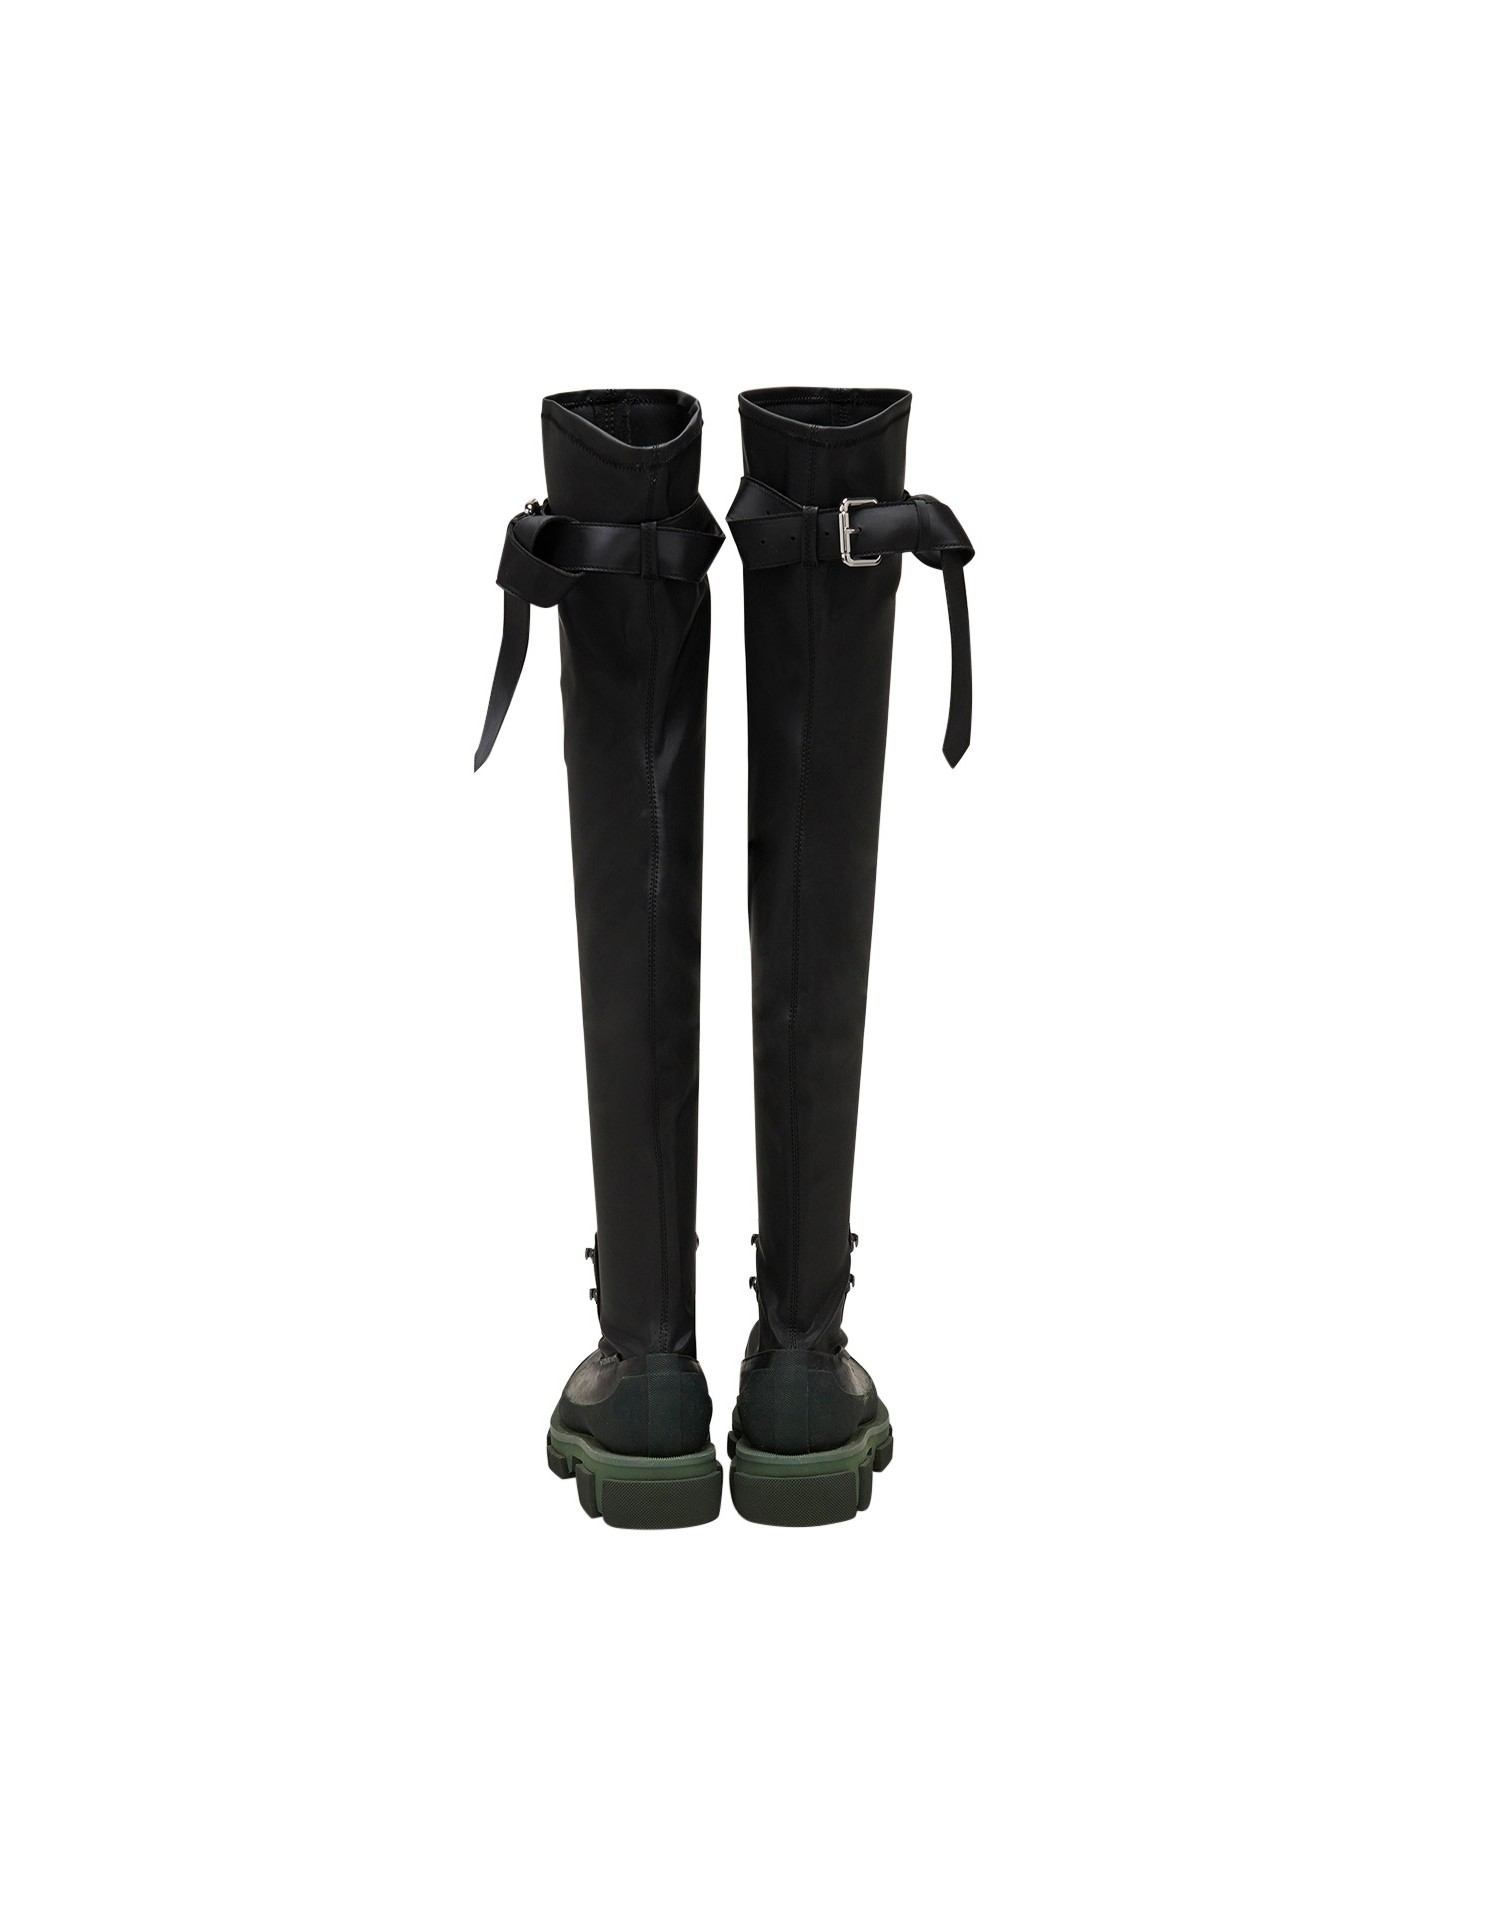 Both x MONSE Gao Thigh High Boots in Olive and Black Back View